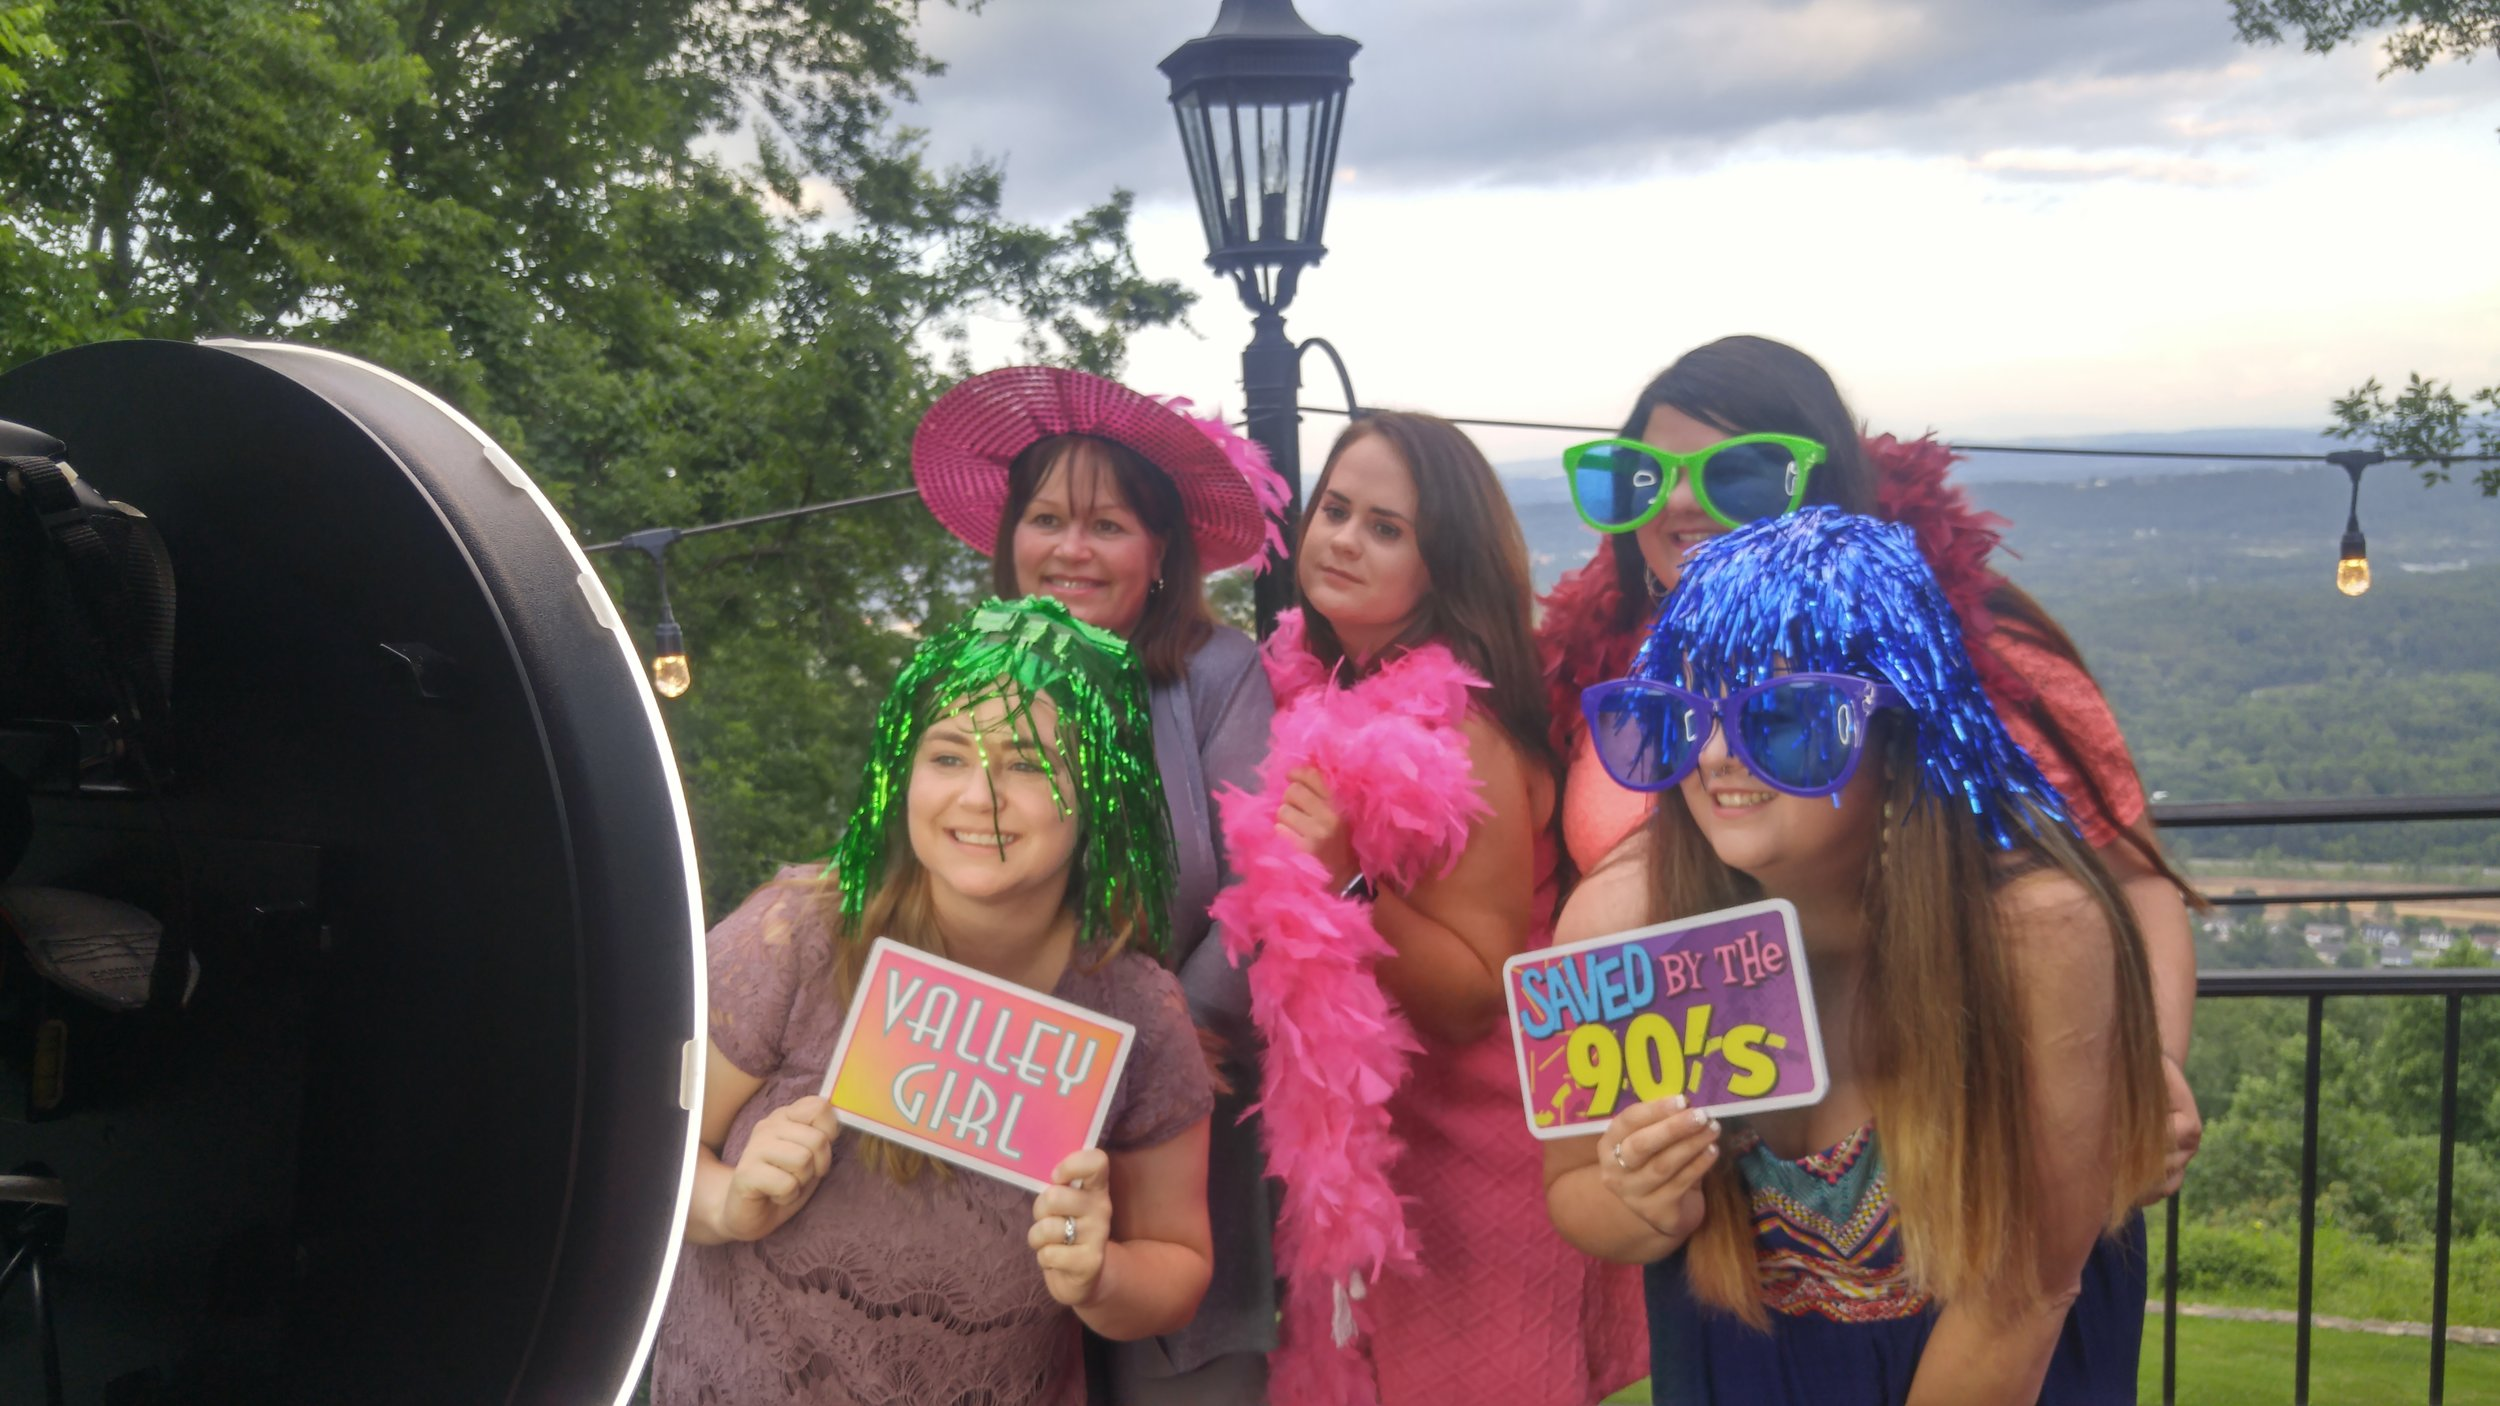 Wedding guests with silly props at a photo booth